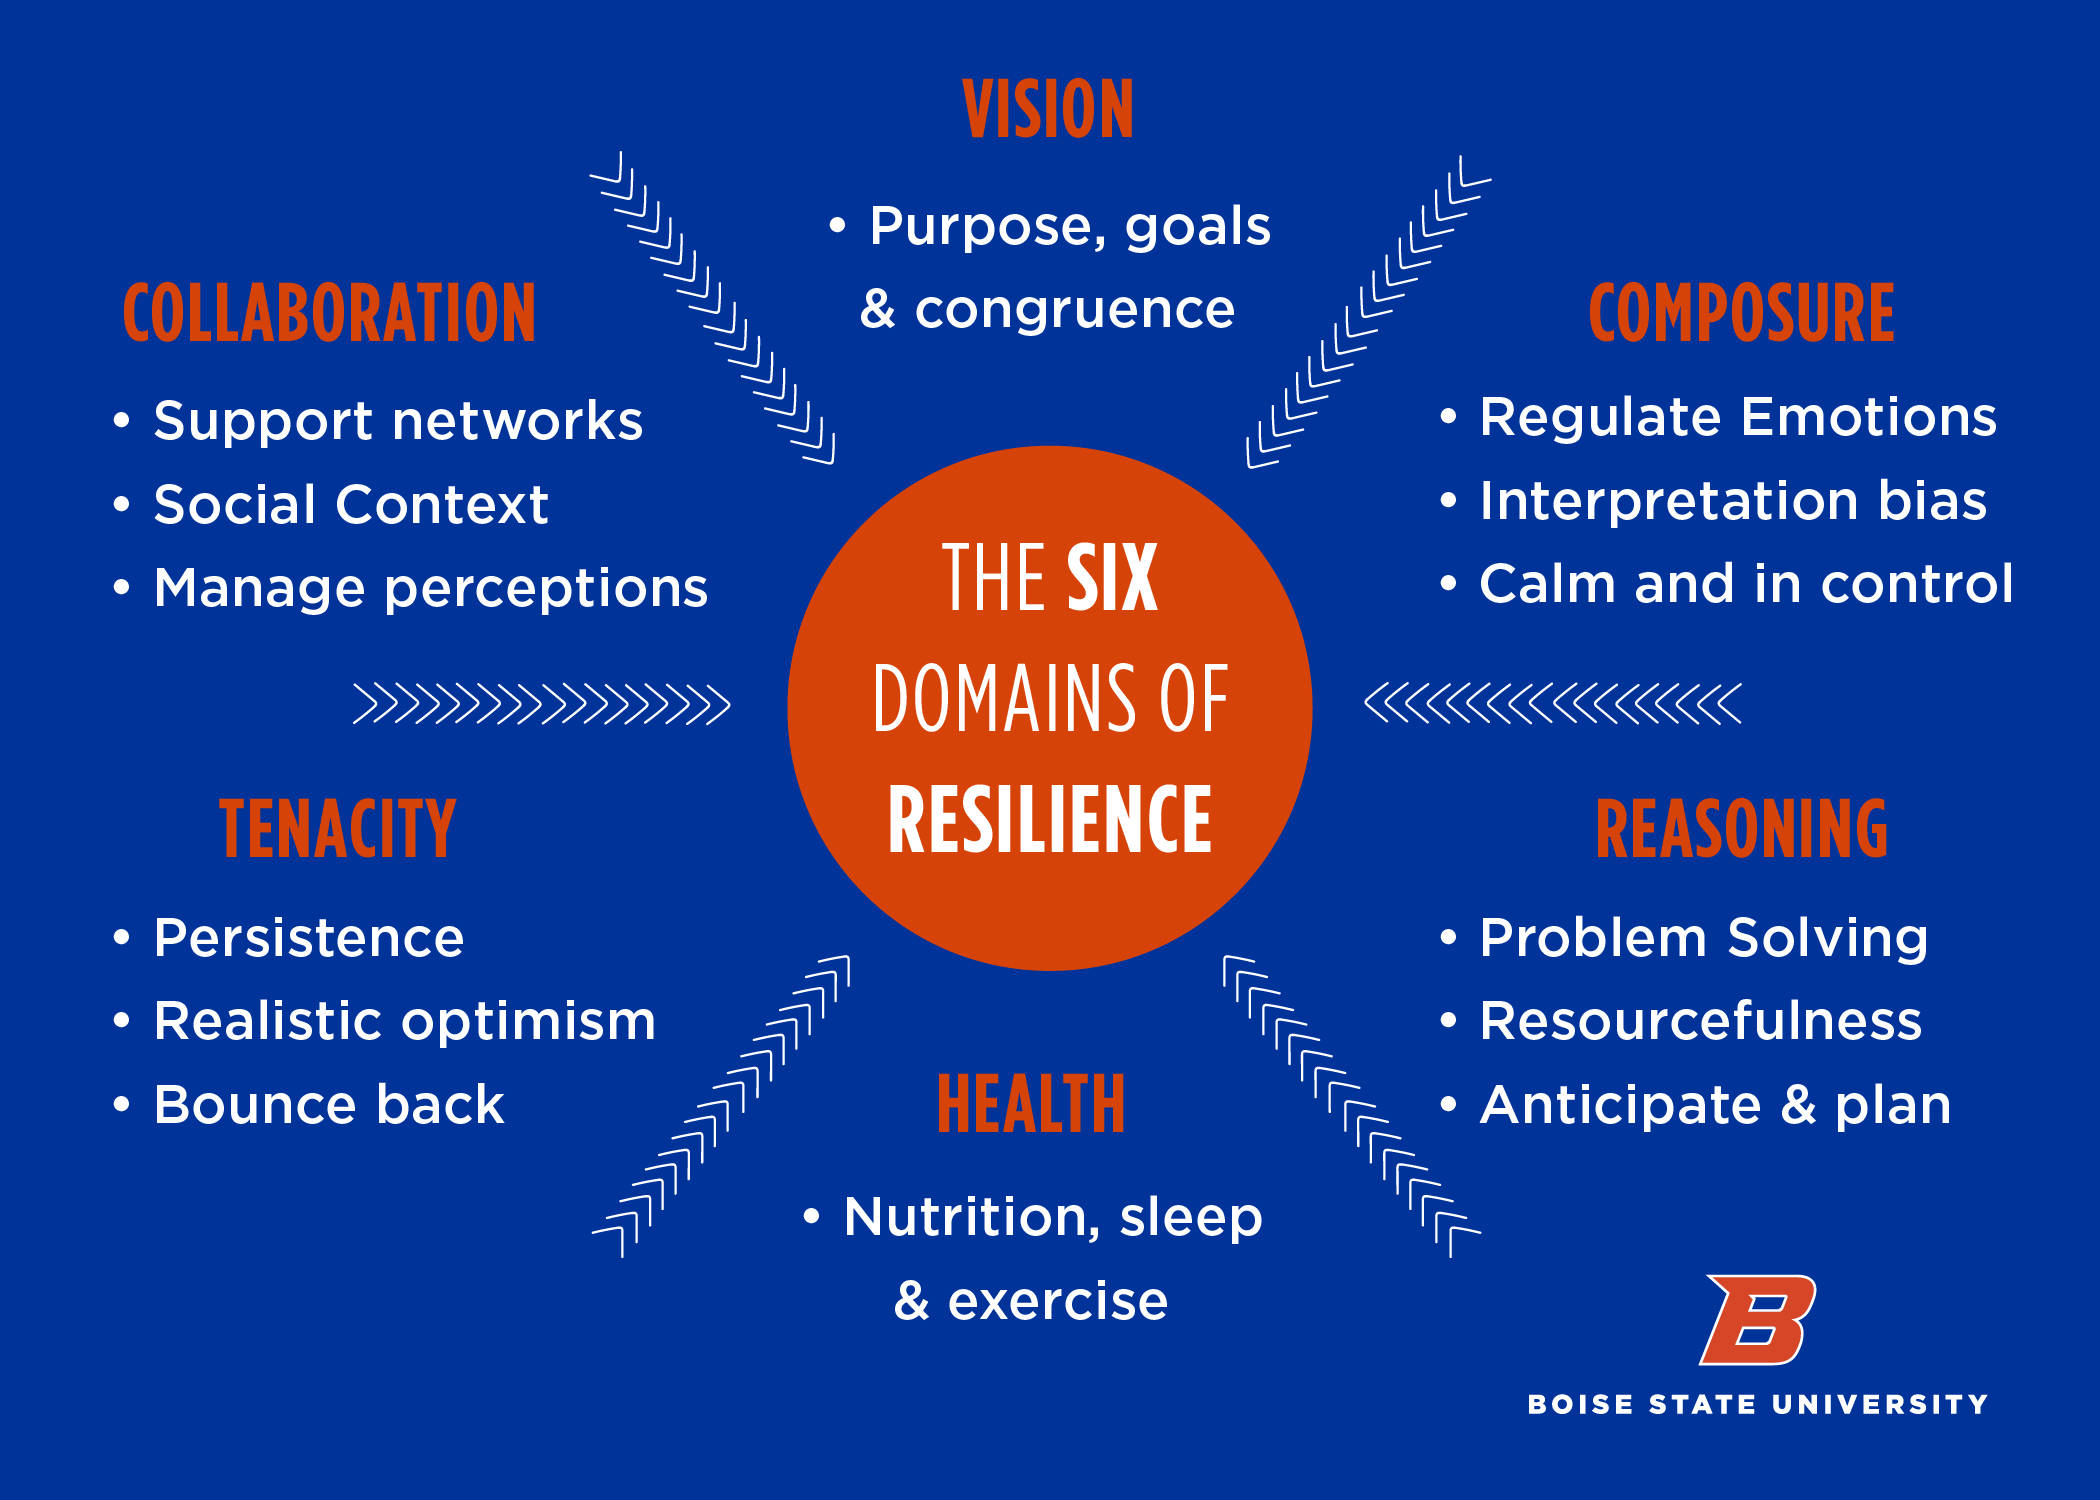 The 6 domains of resilience are vision, collaboration, composure, reasoning, health, and tenacity